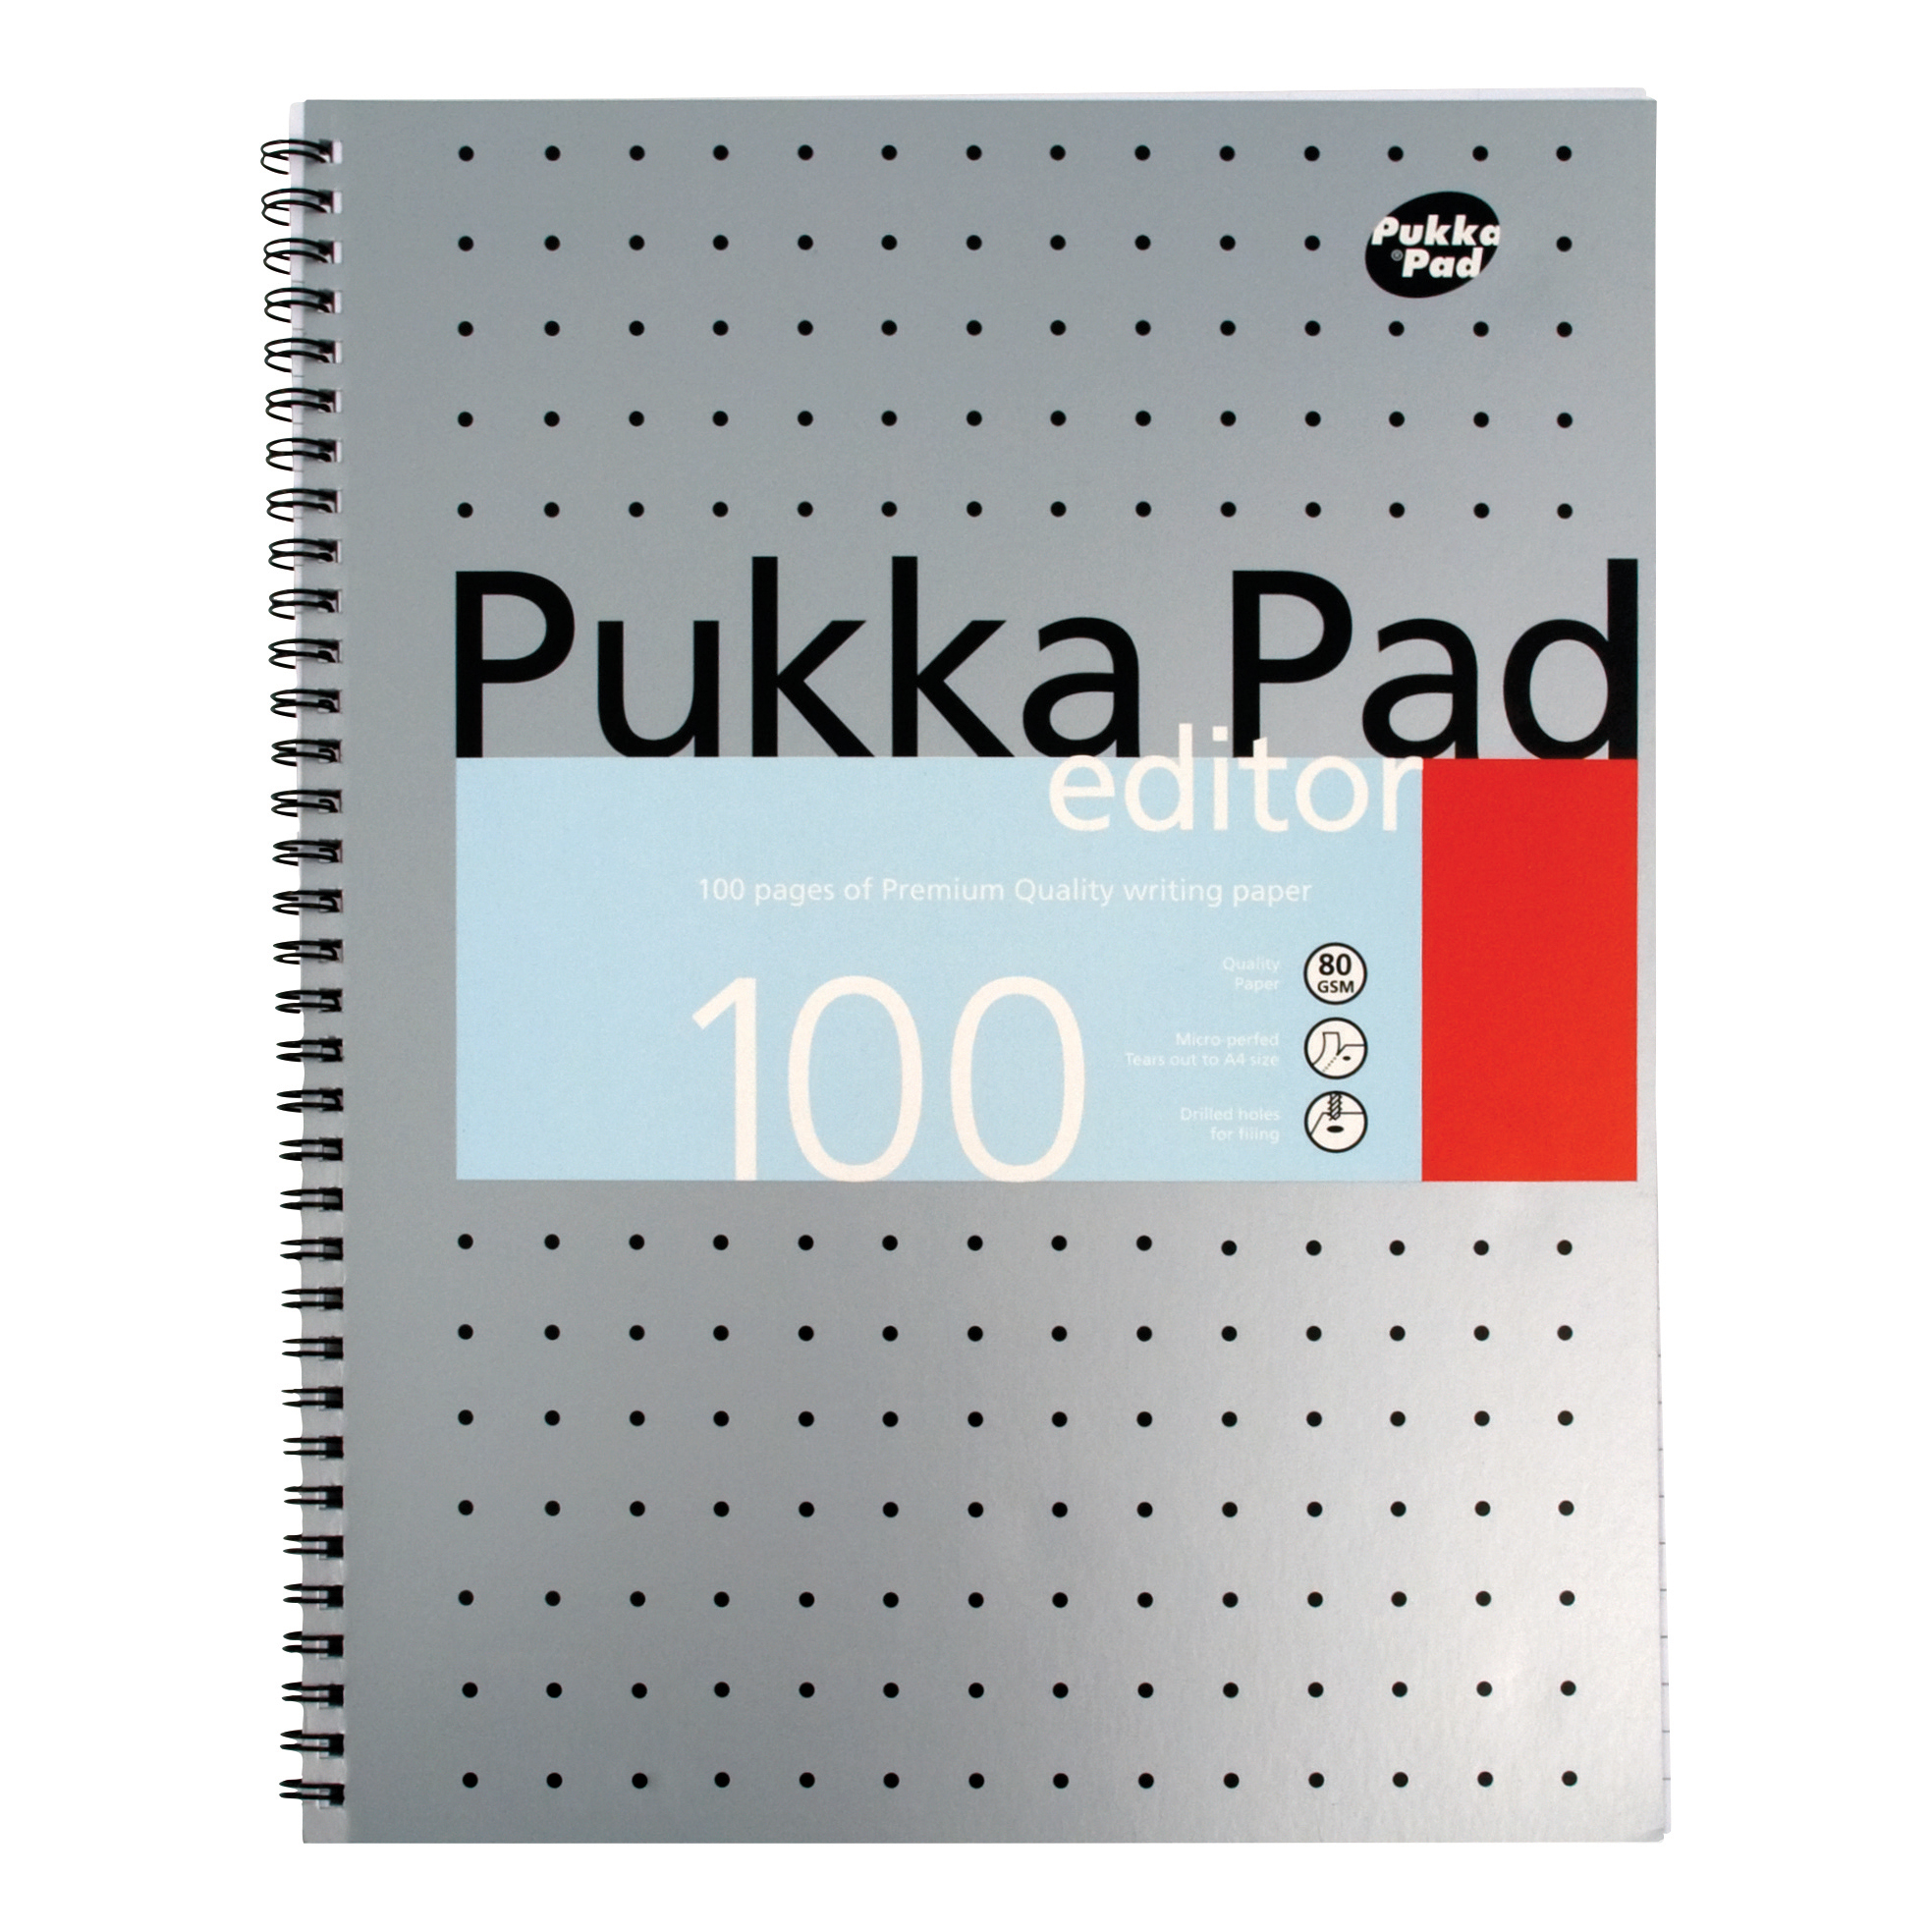 Pukka Pad Metallic Edtr Nbk Wbnd 80gsm Ruled Margin Perf Punch 4 Hole 100pp A4+ Silver Ref EM003 Pack 3